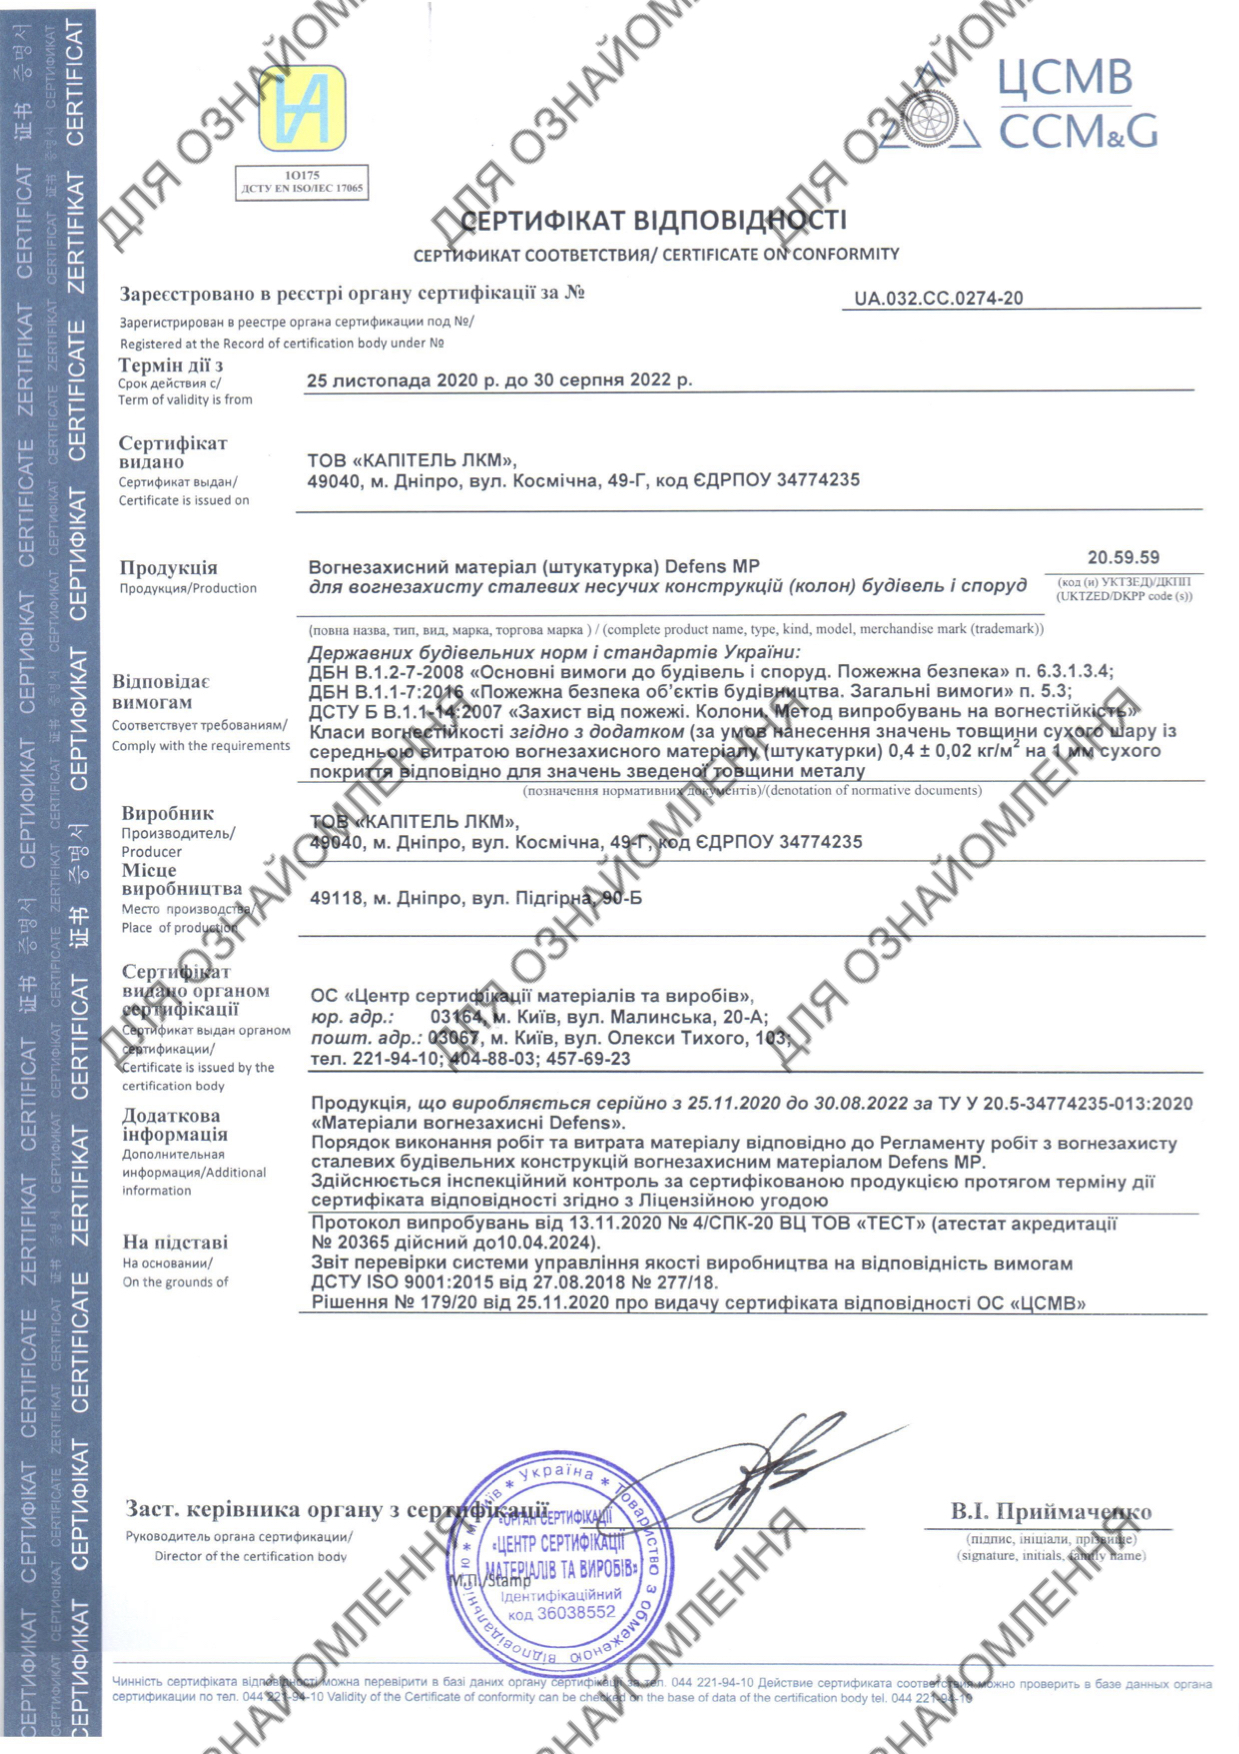 Obtaining a certificate for Defens MP plaster